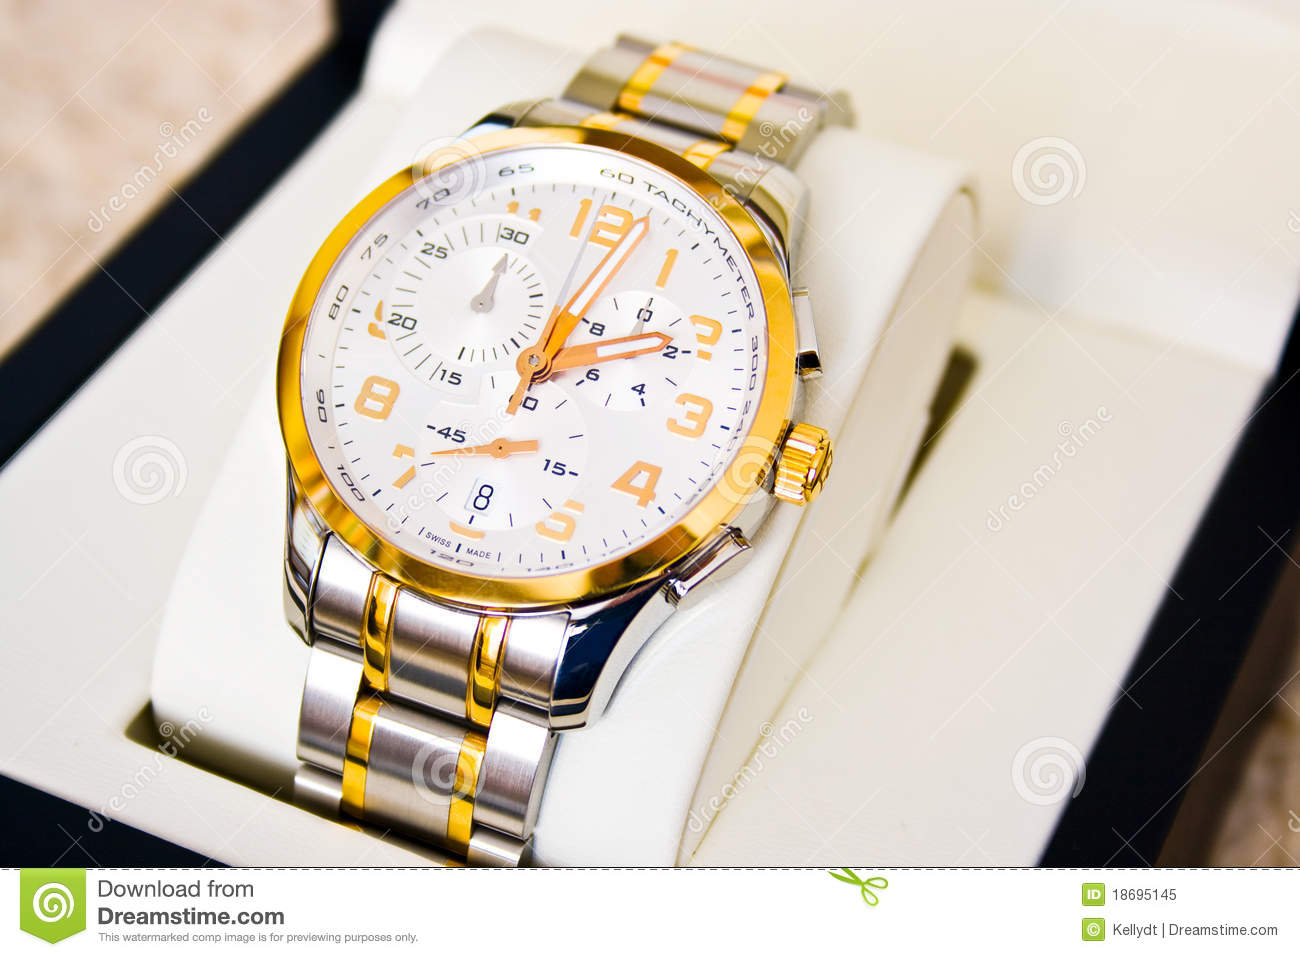 Swiss Watch - Gift Royalty Free Stock Photo - Image: 18695145